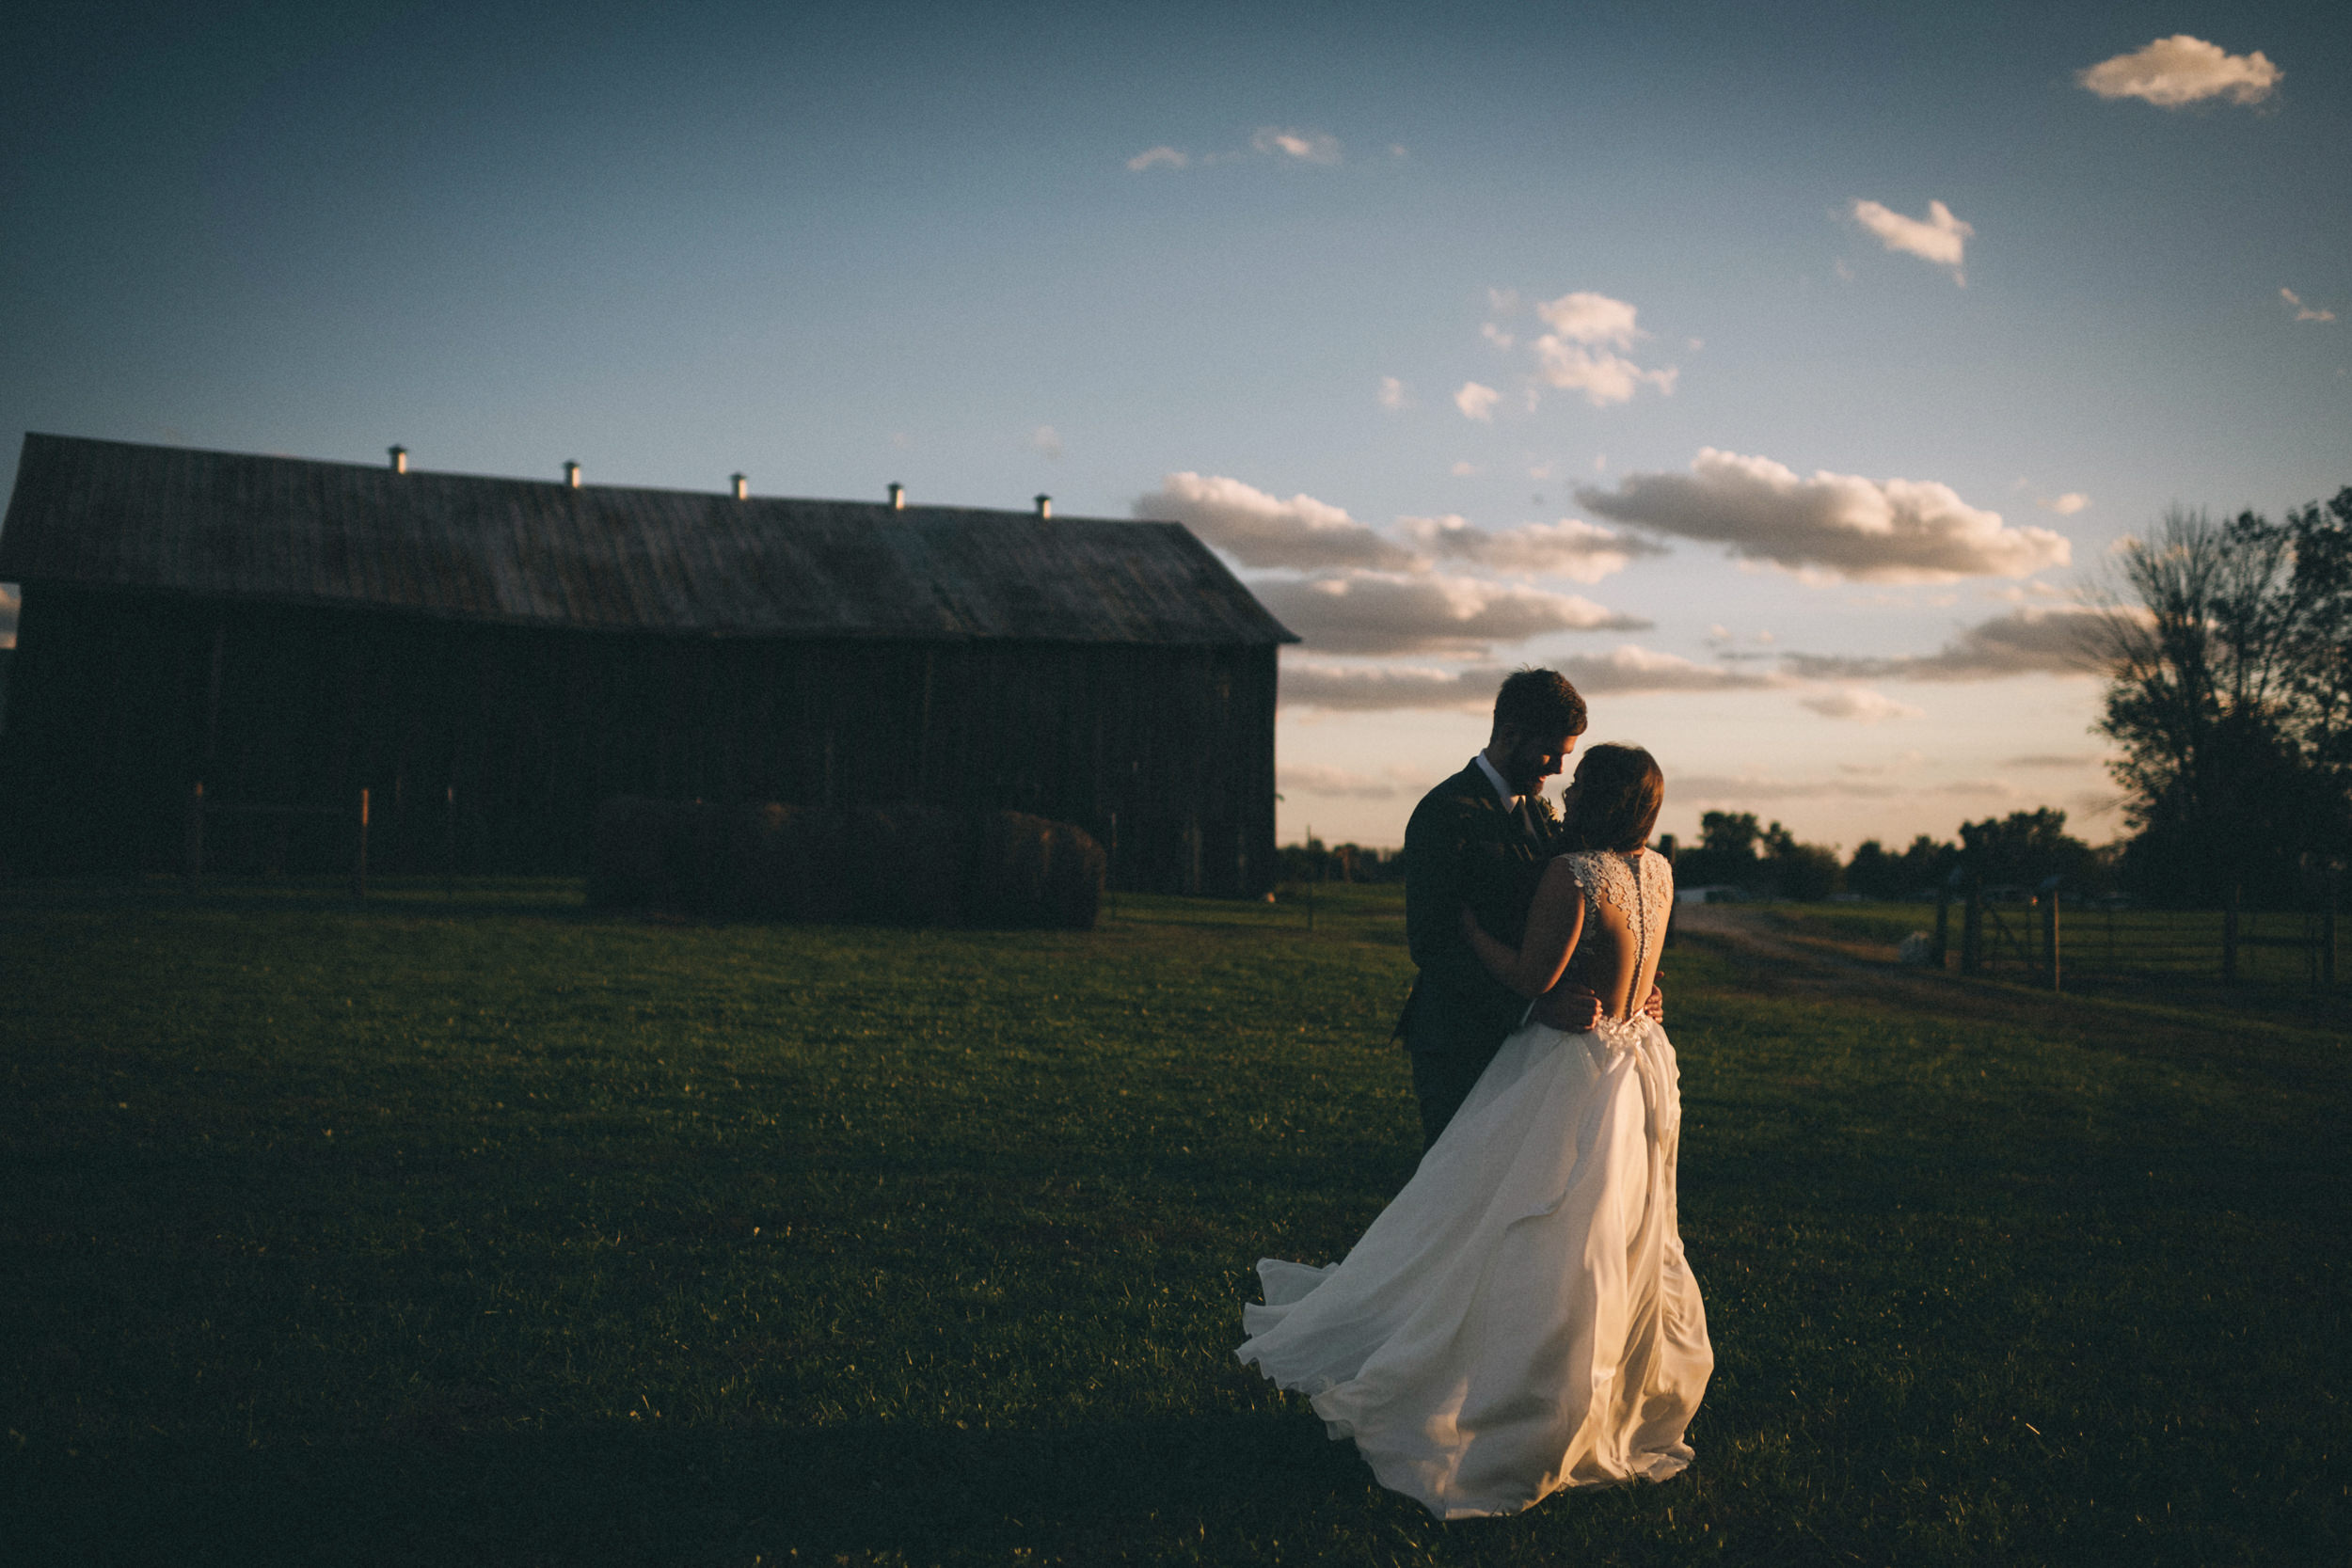 Maggie-Corey-Fall-Wedding-Barn-At-Twin-Lakes-Louisville-By-Kentucky-Wedding-Elopement-Photographer-Sarah-Katherine-Davis-Photography-663edit.jpg